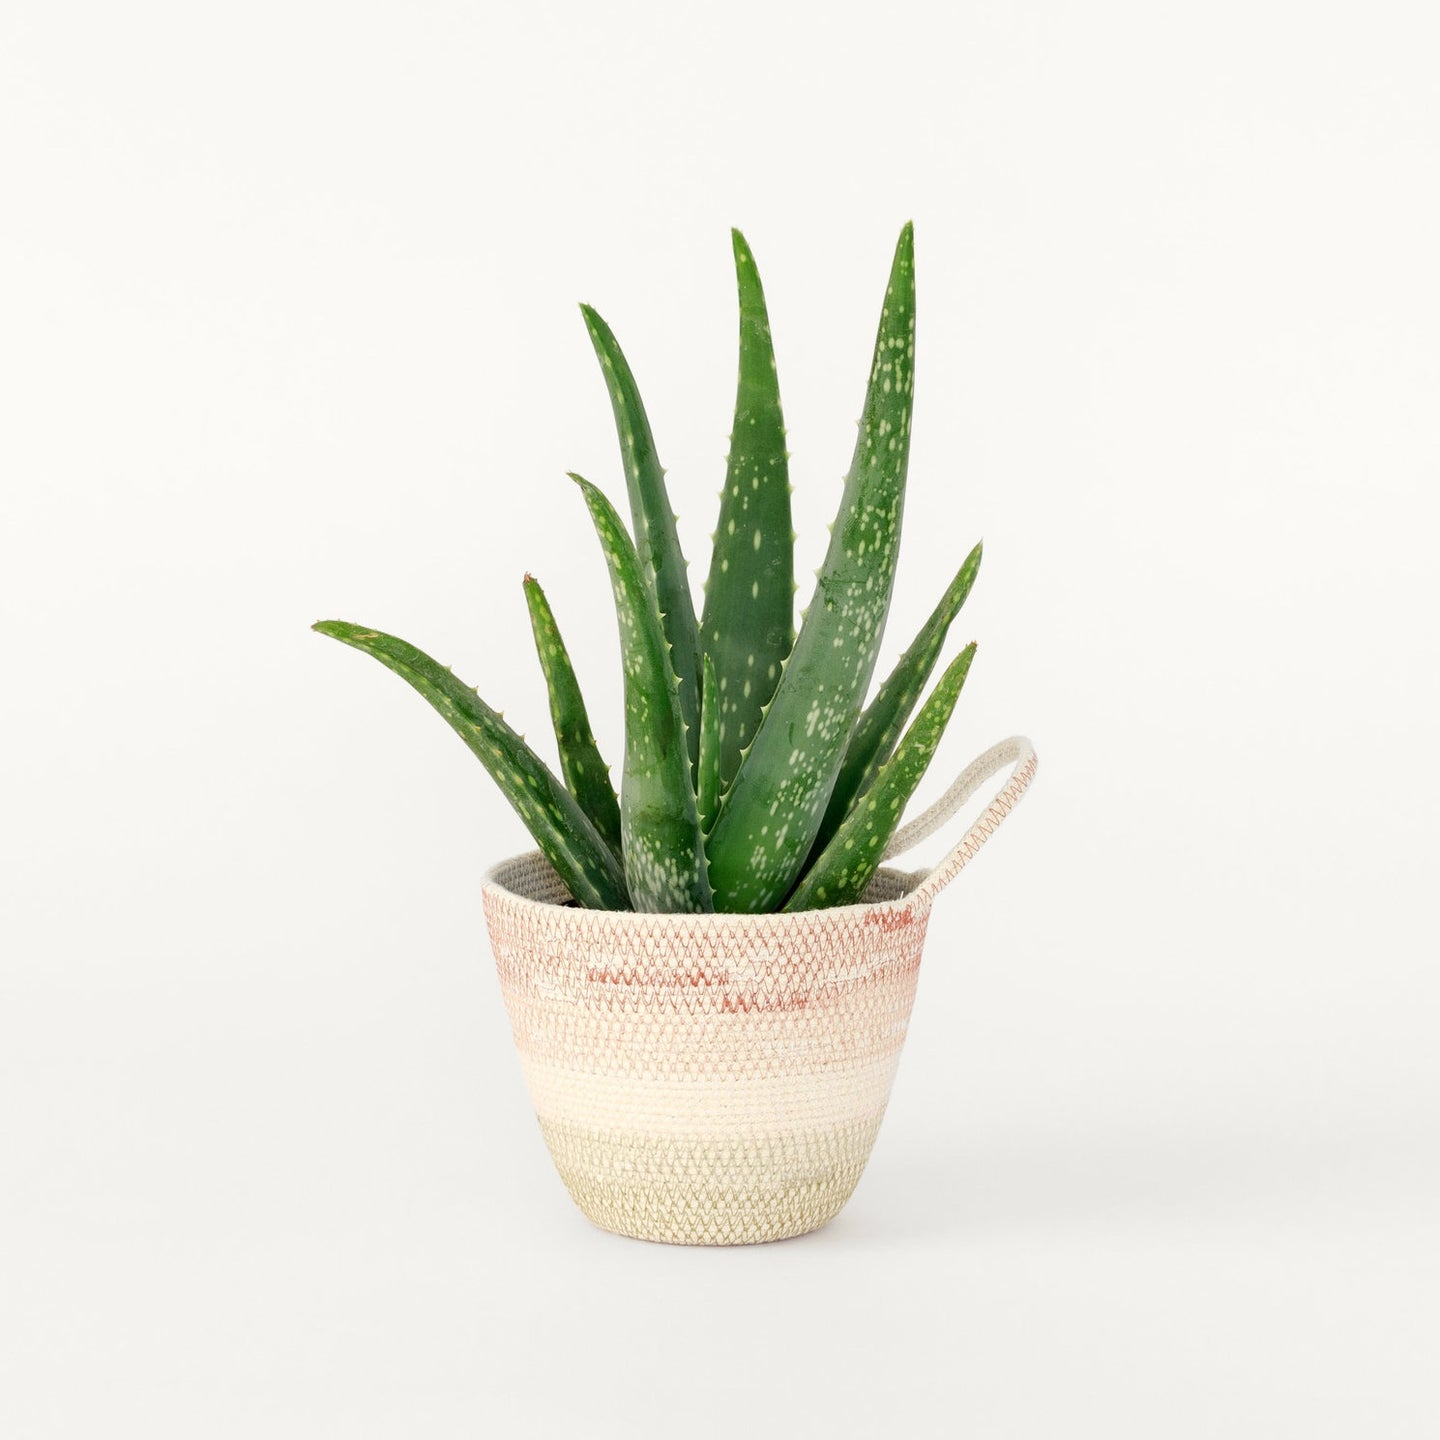 Moriah Okun: Medium Planter